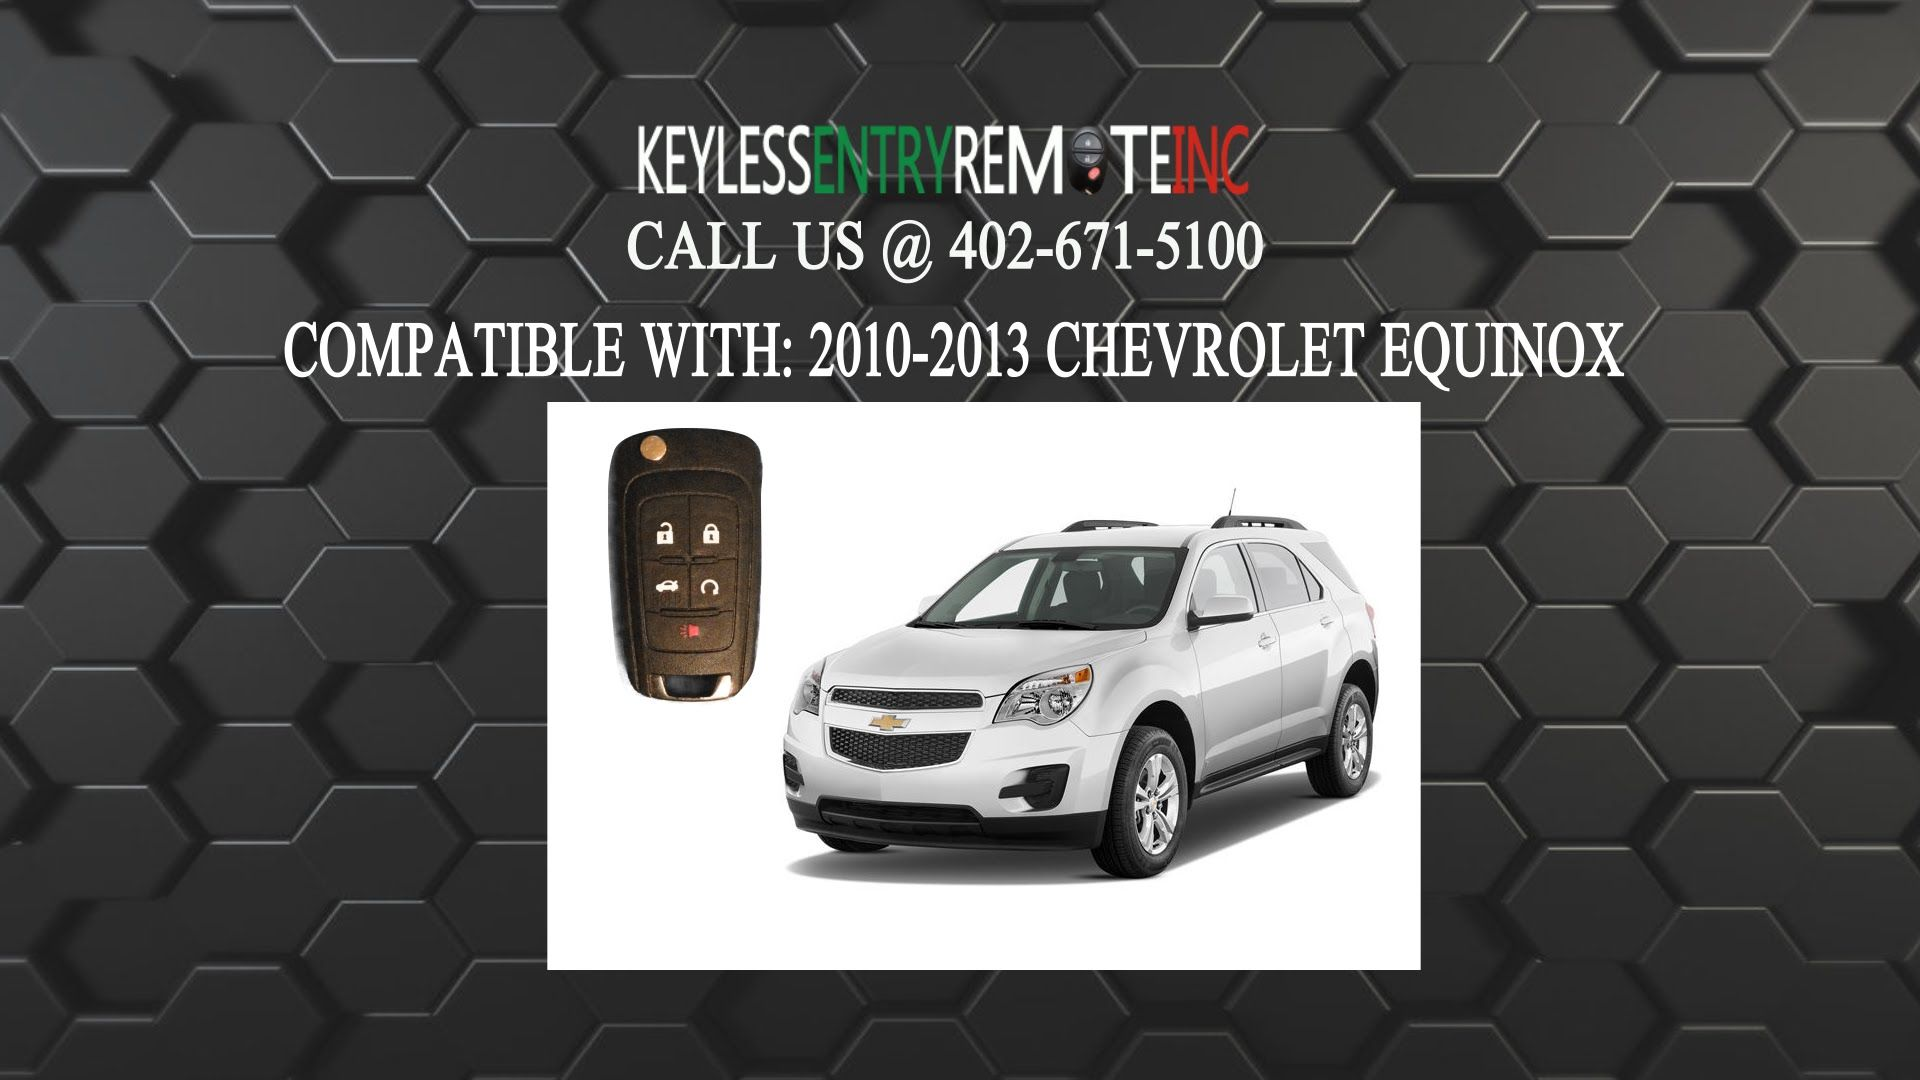 How To Replace A Chevrolet Equinox Key Fob Battery 2010 2016 Chevrolet Equinox Key Fob Chevrolet